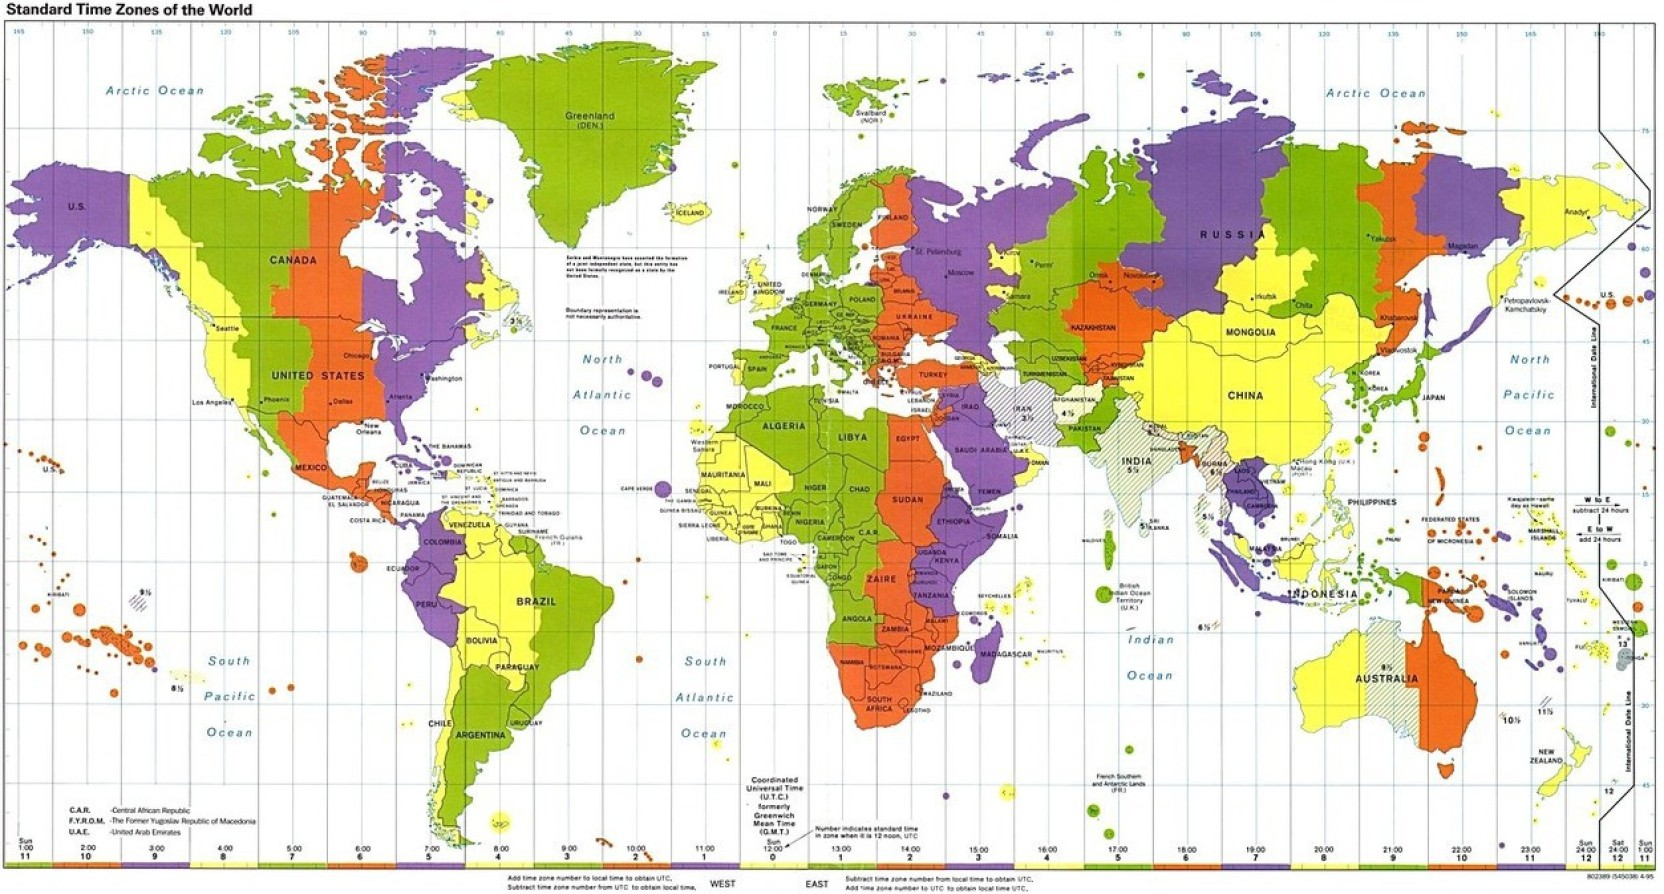 World Map Hd Wallpaper On Quality Paper Paper Print - Printable World Time Zones Map , HD Wallpaper & Backgrounds